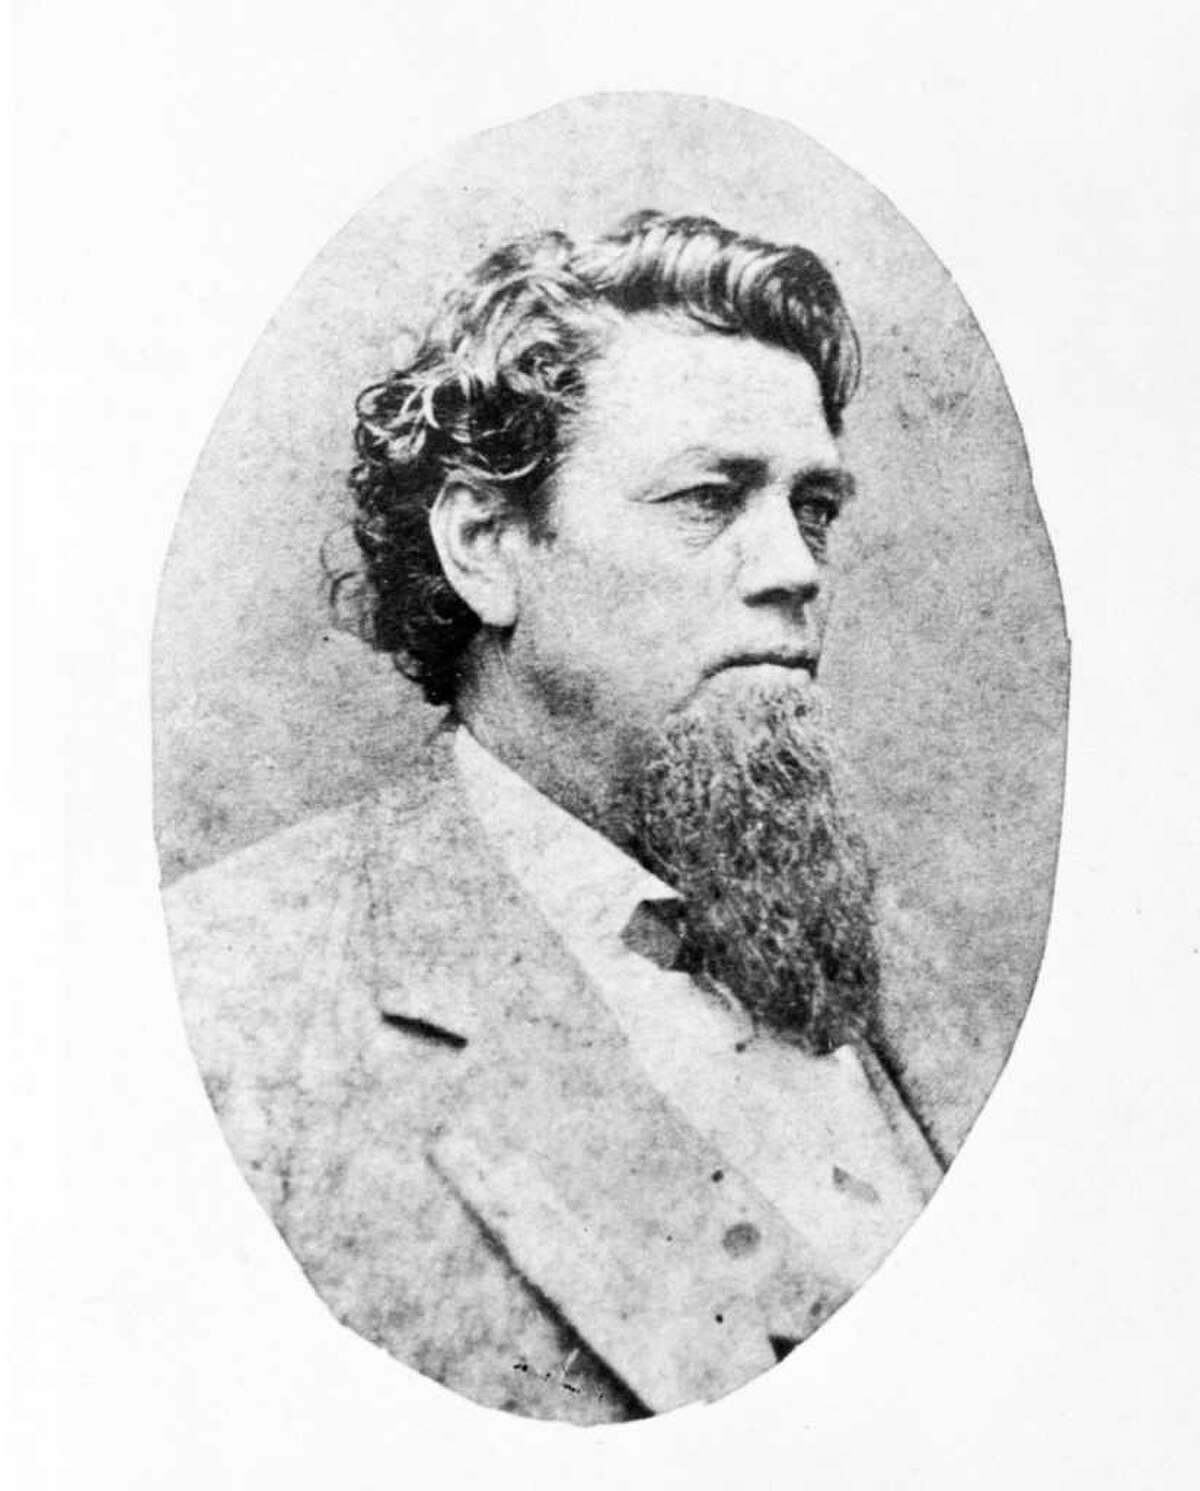 The town of Kingsville, Texas is named for Richard King, the founder and owner of the King Ranch. He was born in 1824 in New York City.